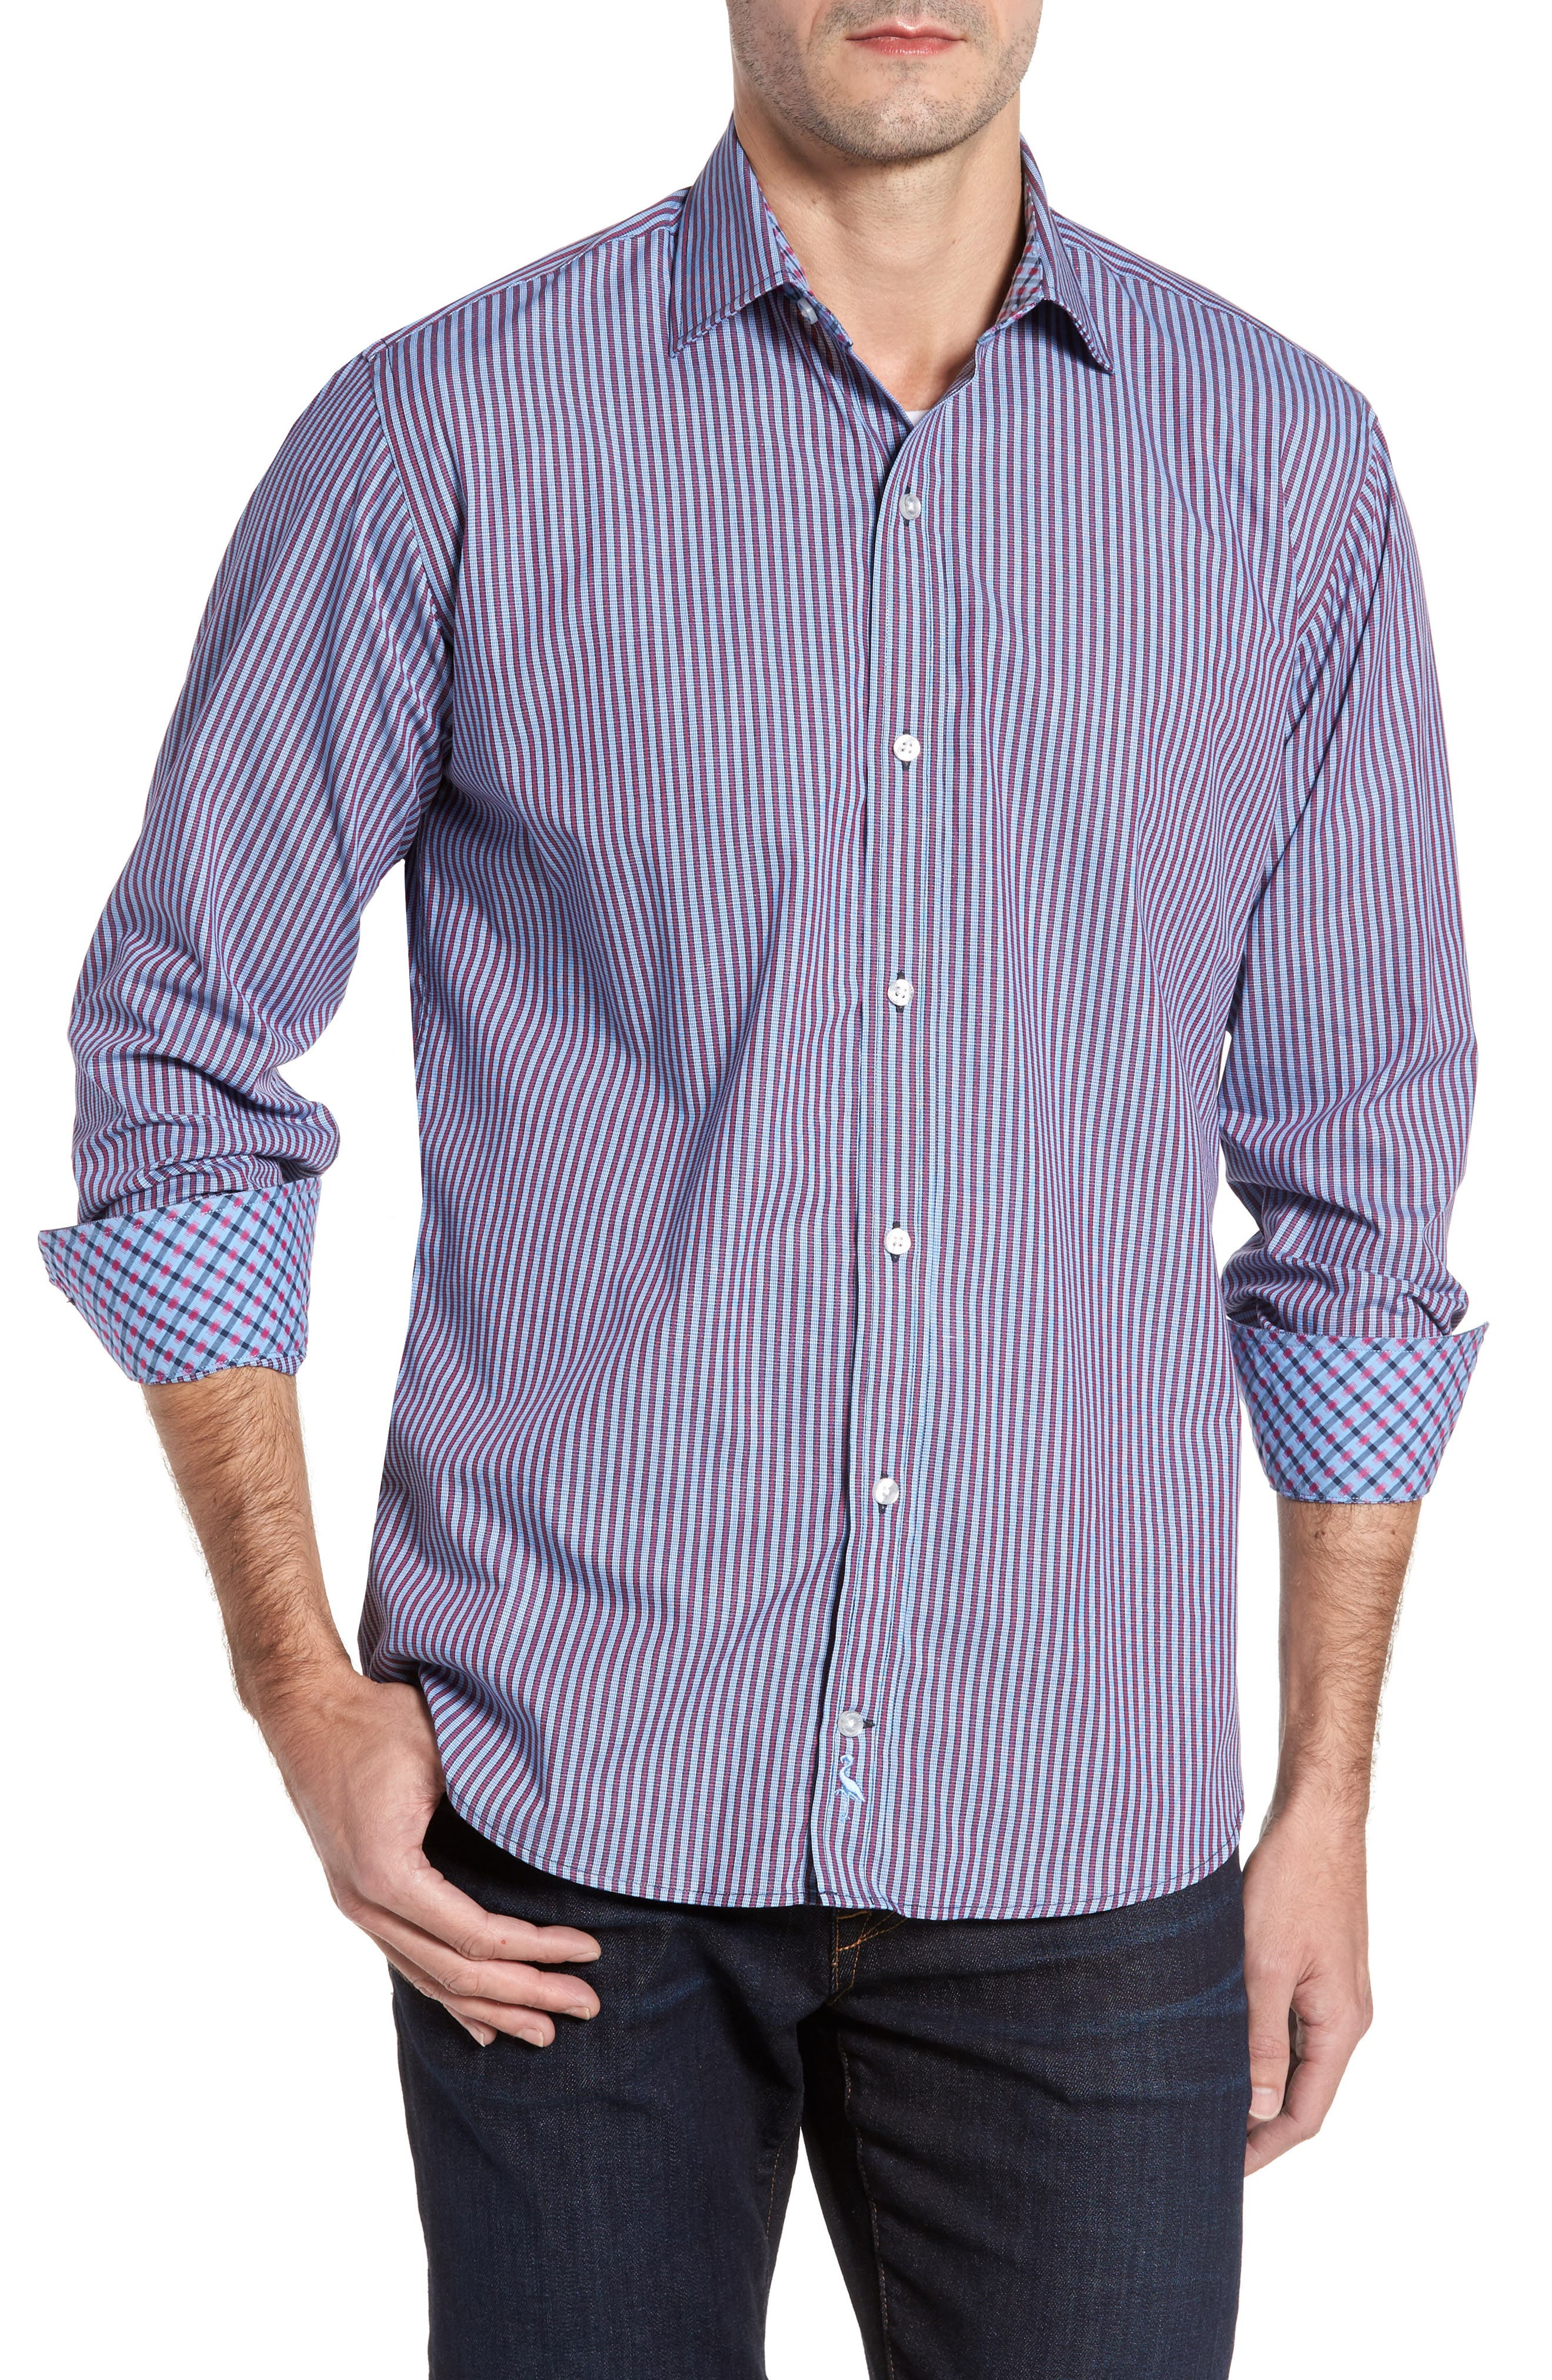 Brownfields Striped Sport Shirt,                             Main thumbnail 1, color,                             Merlot